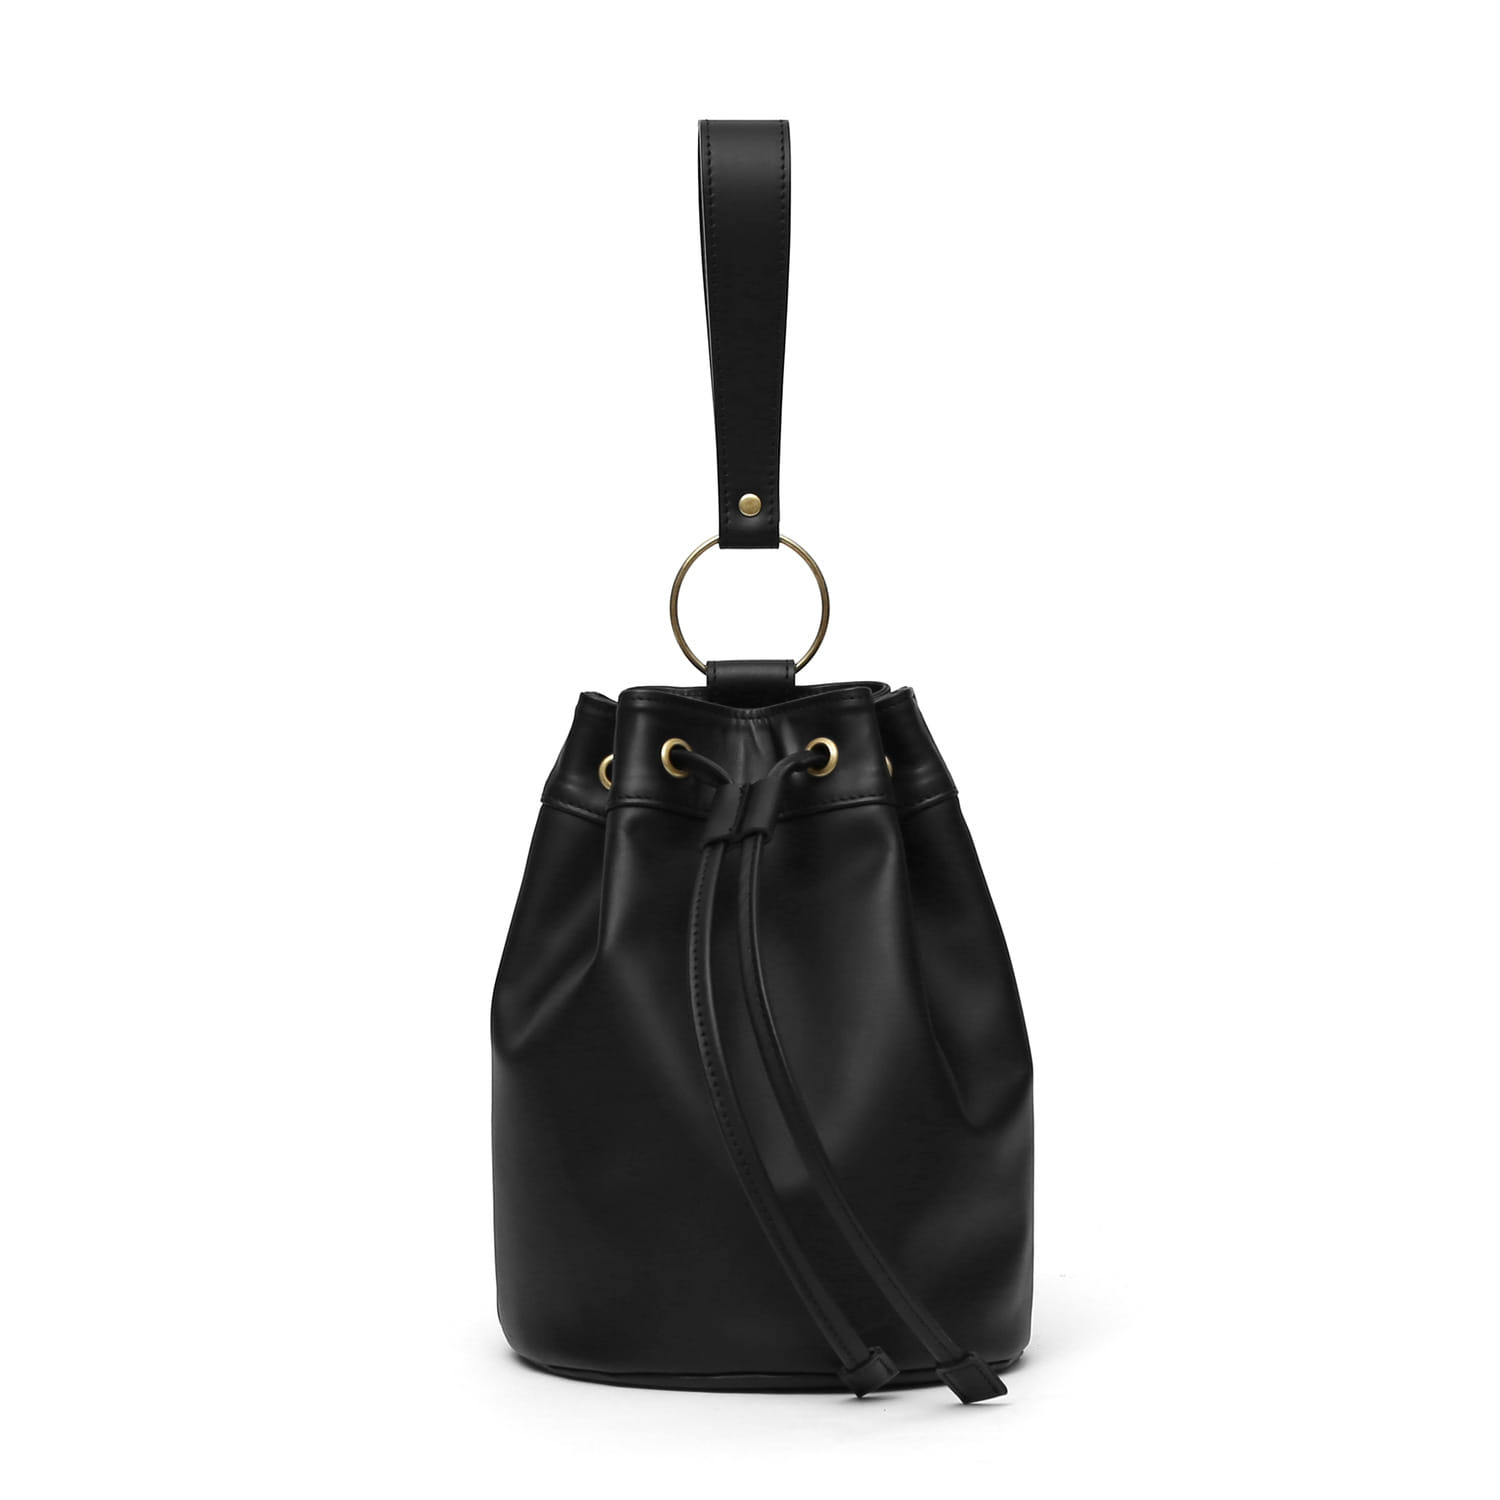 BOWL BAG / RING STRAP / LEATHER / BLACK